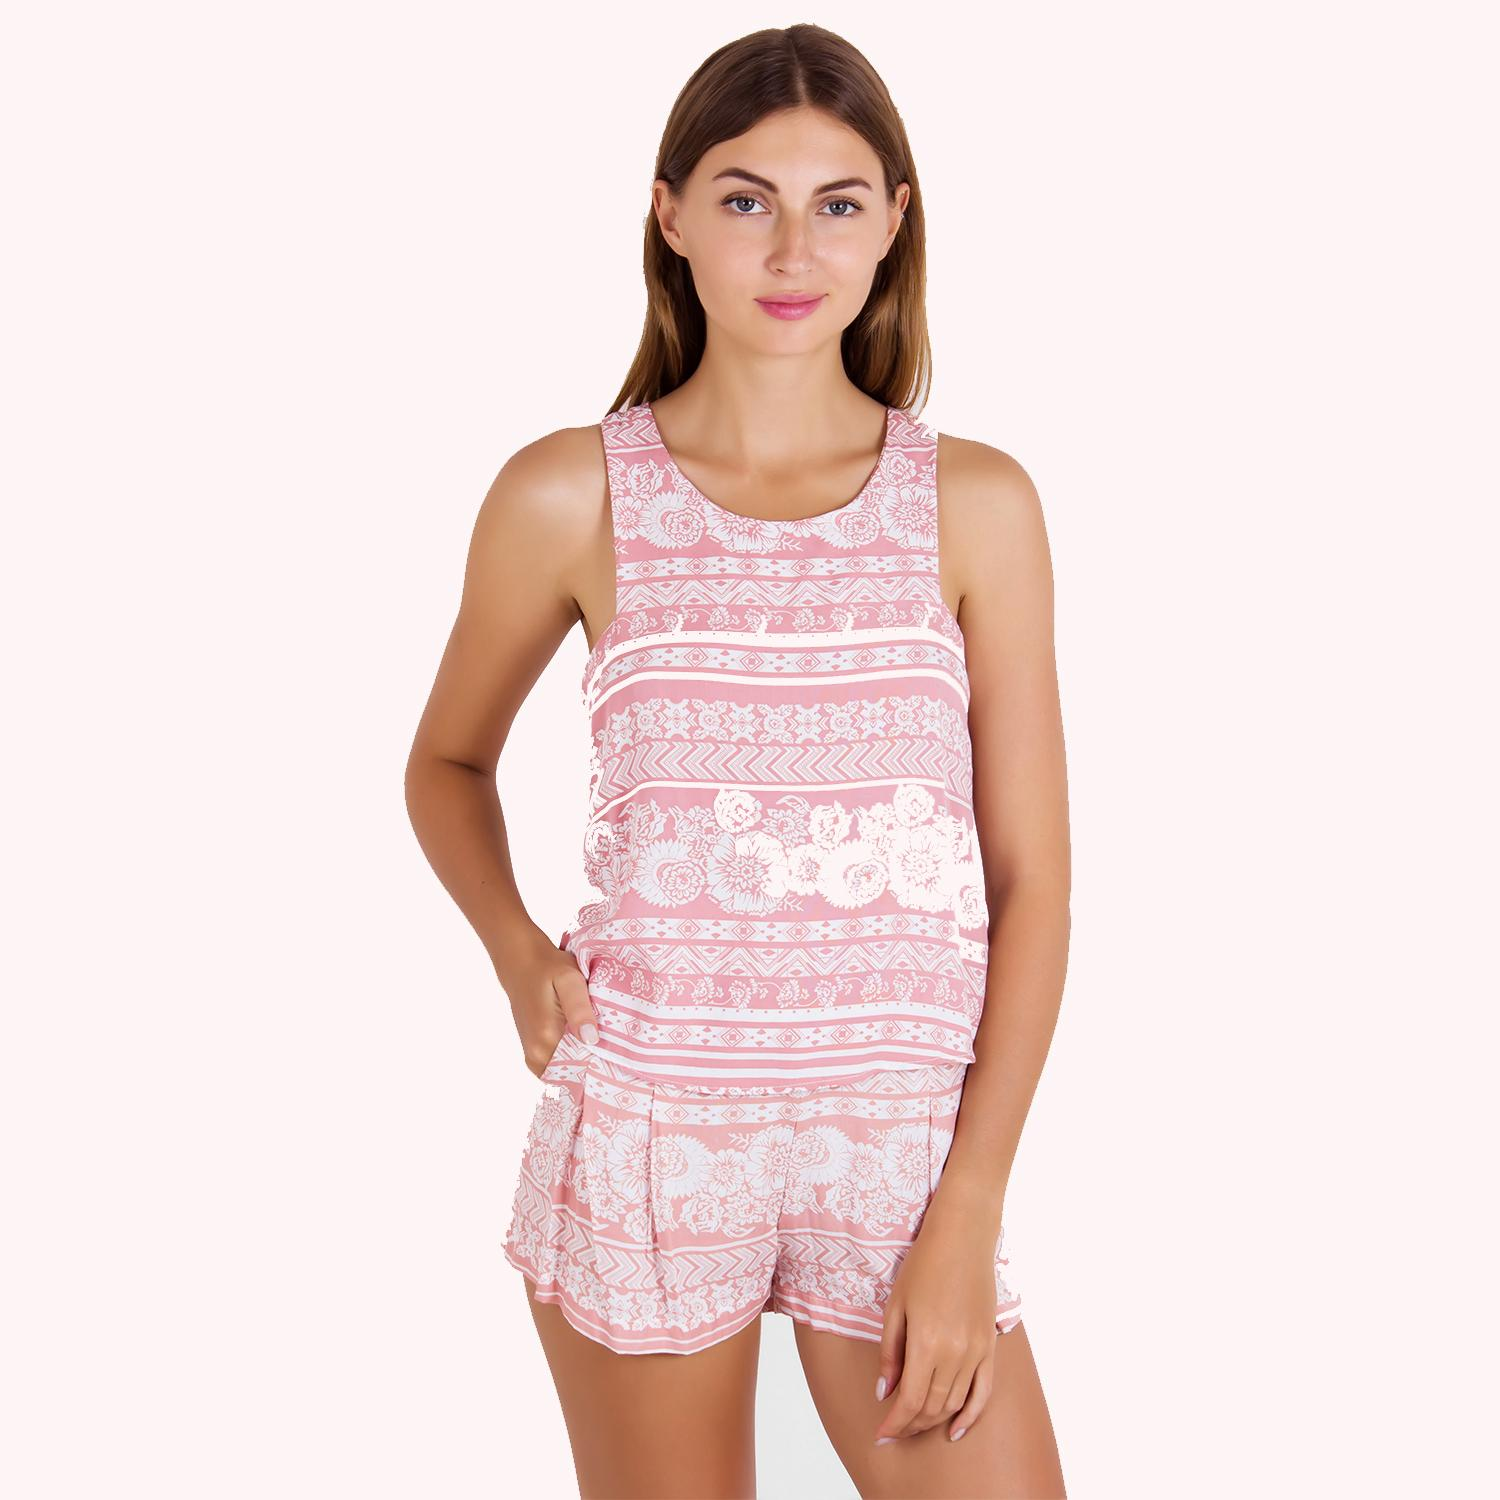 PALM CAREN TOP IN SUNNY-SUNNY CORAL-6355043511010603001